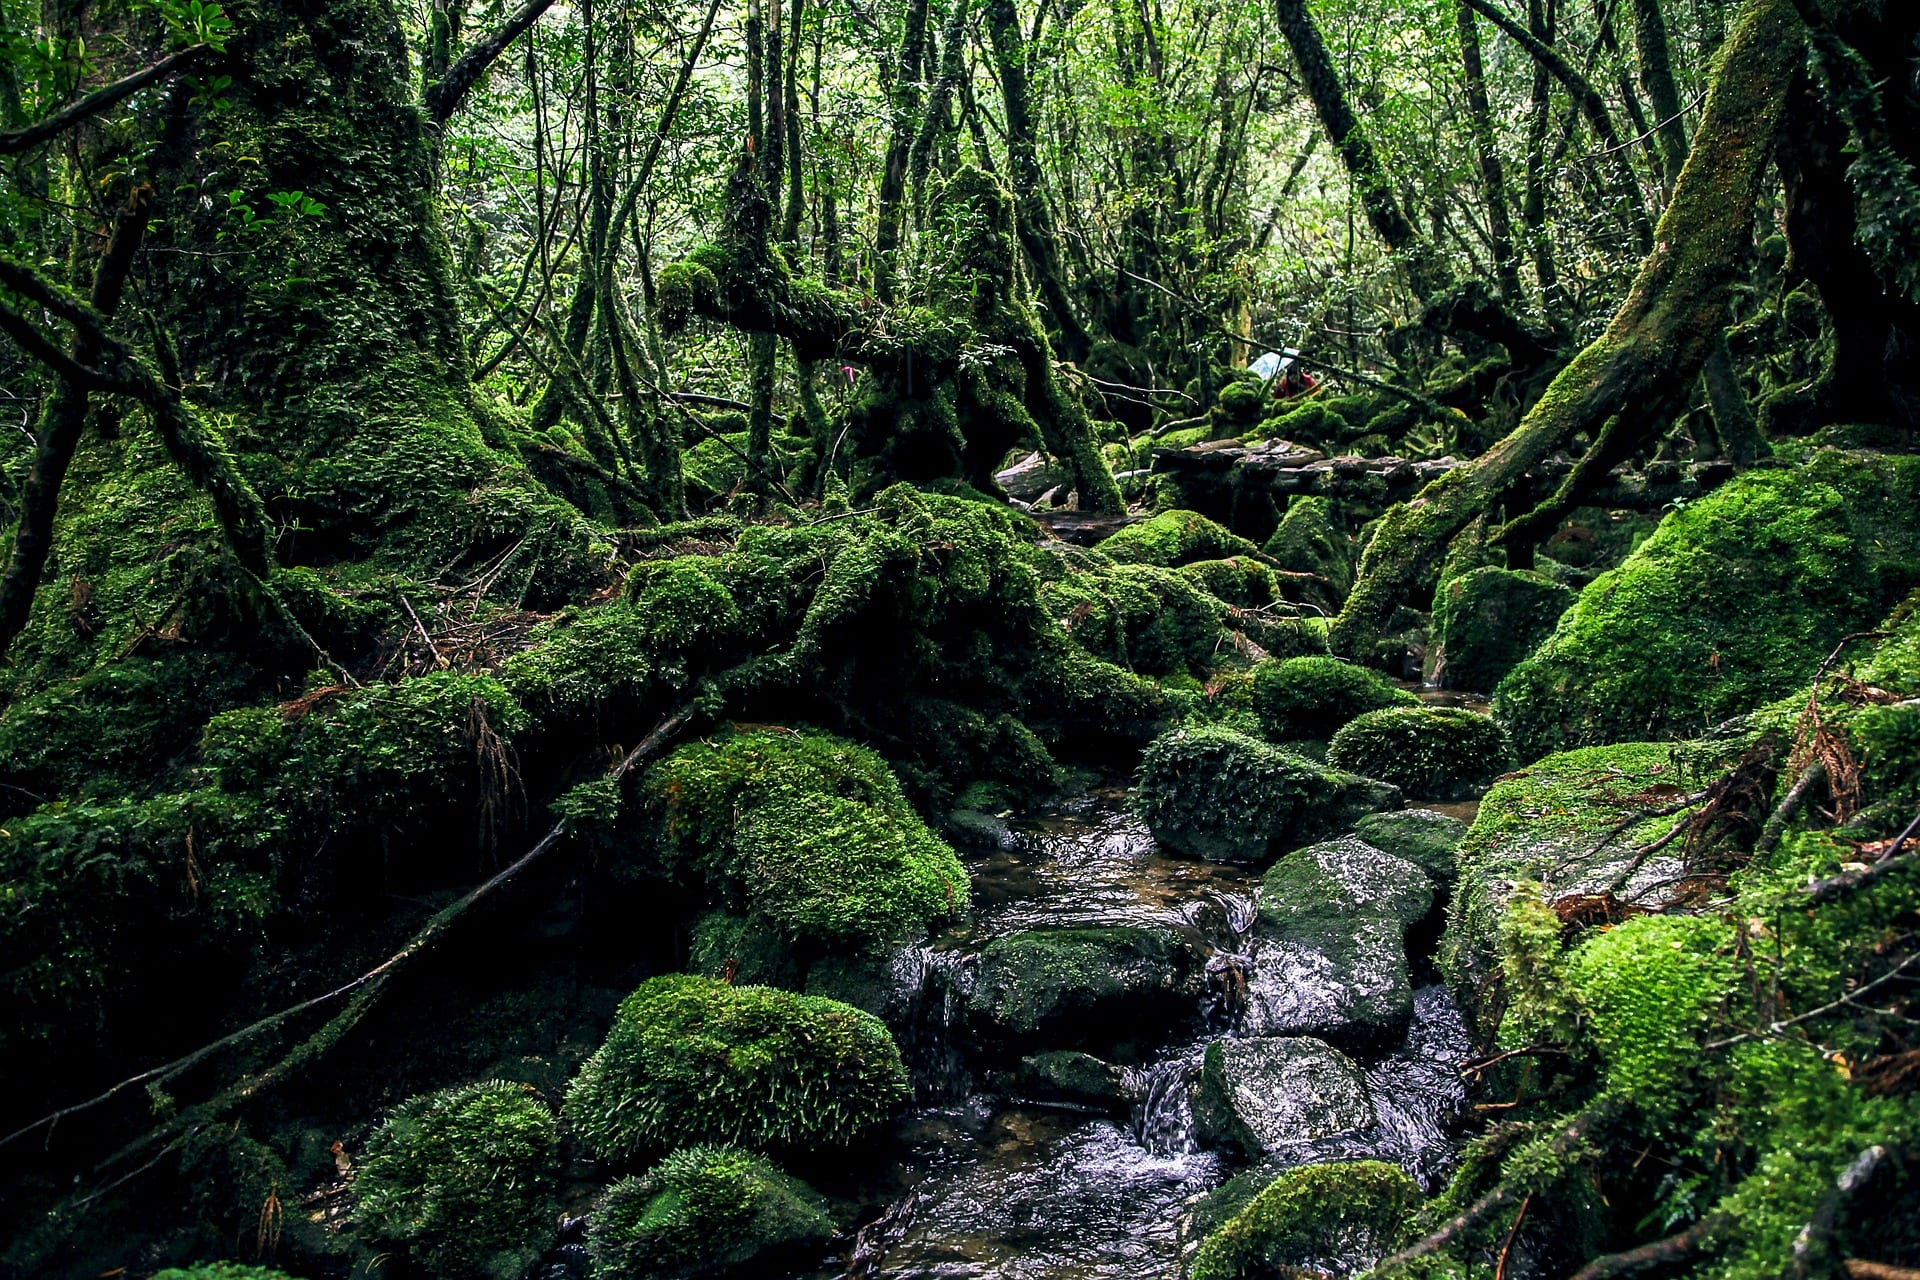 Yakushima in Japan - Forest with greens and passing stream of water